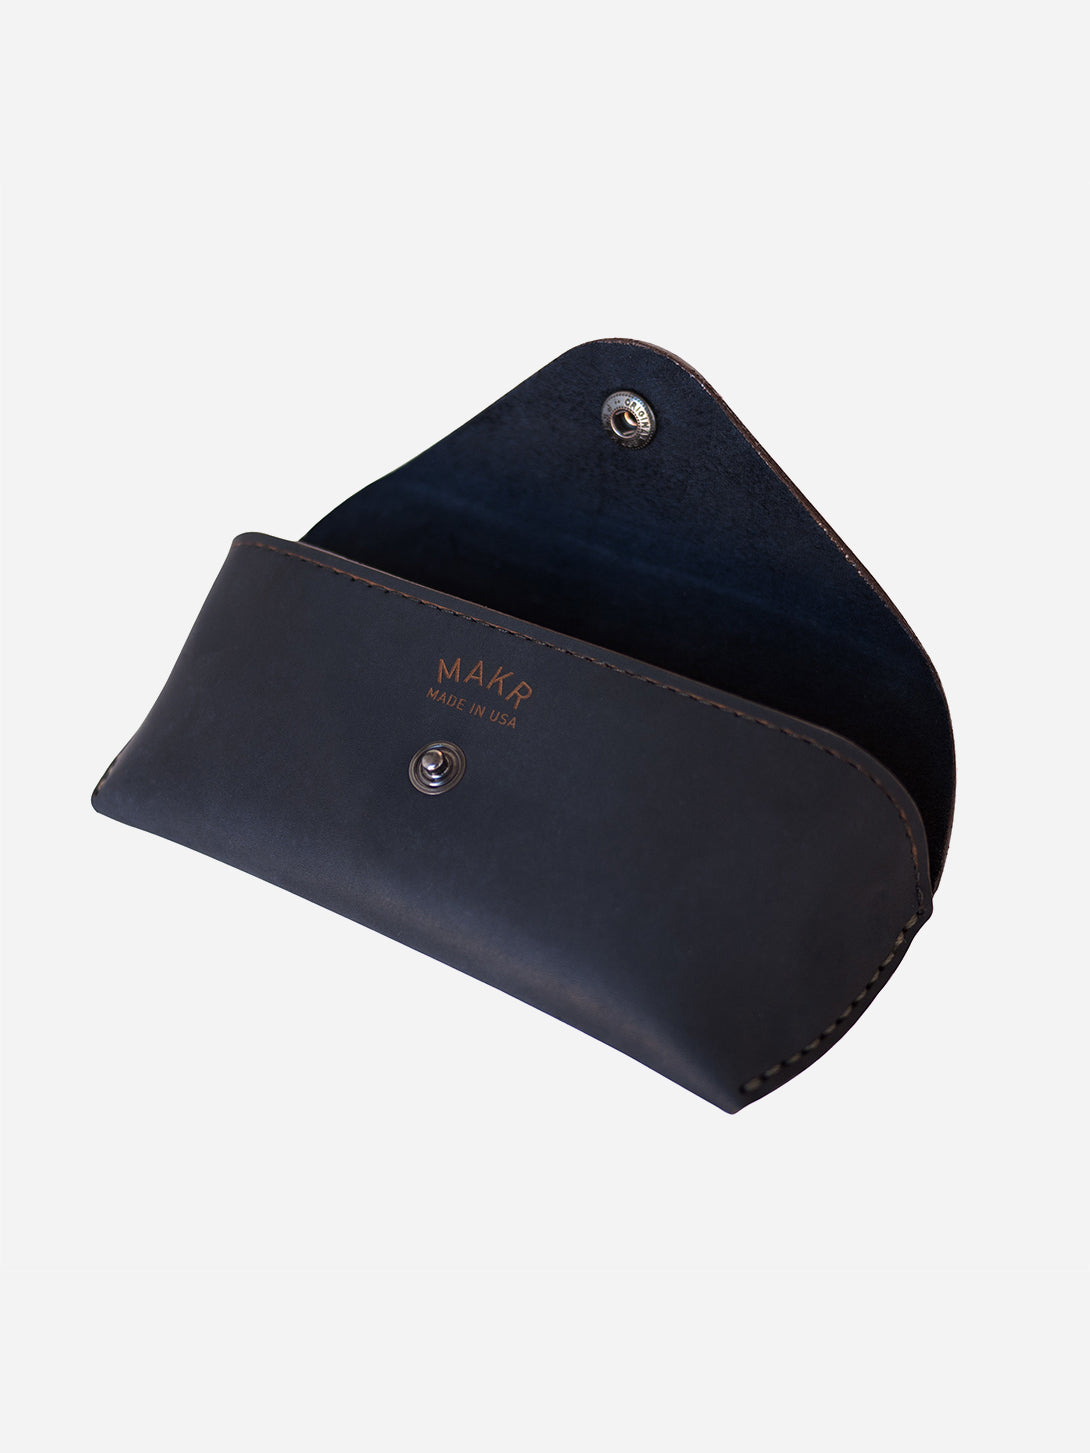 NAVY MATTE mens glasses case blue leather eyewear sleeve makr